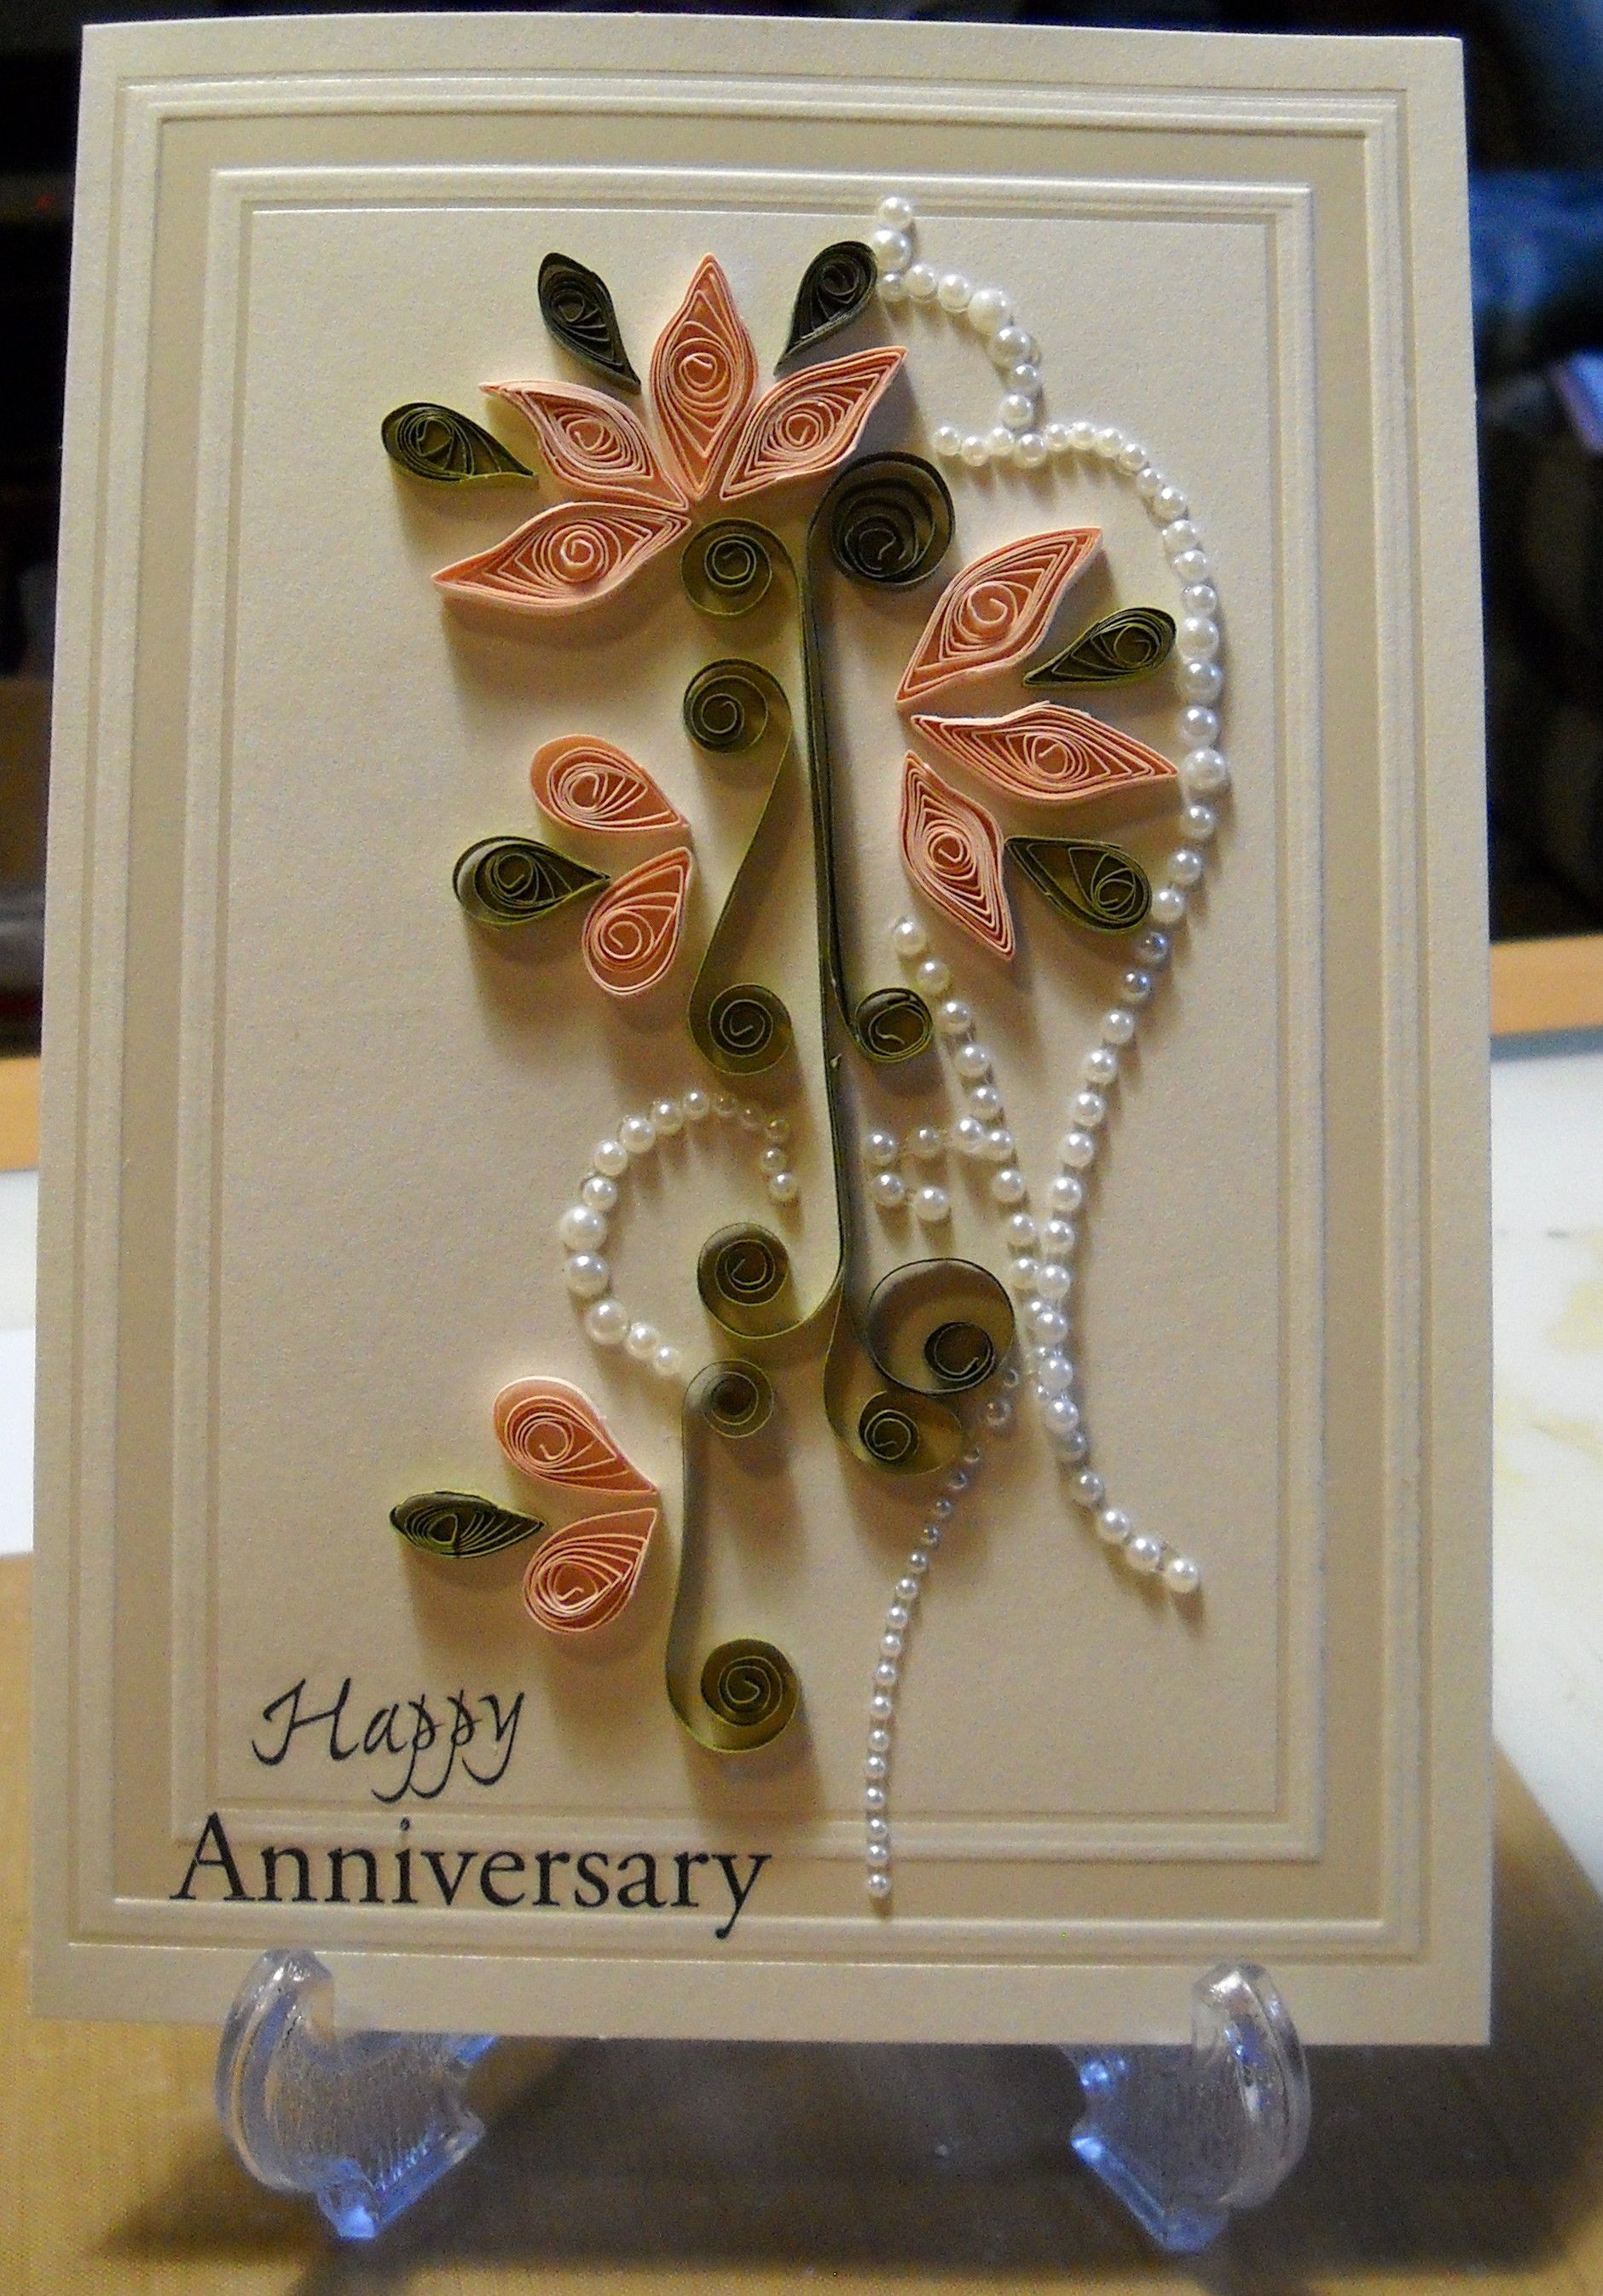 Searchwords: Quilled anniversary card. Made by Justme022746 from scrapbook.com